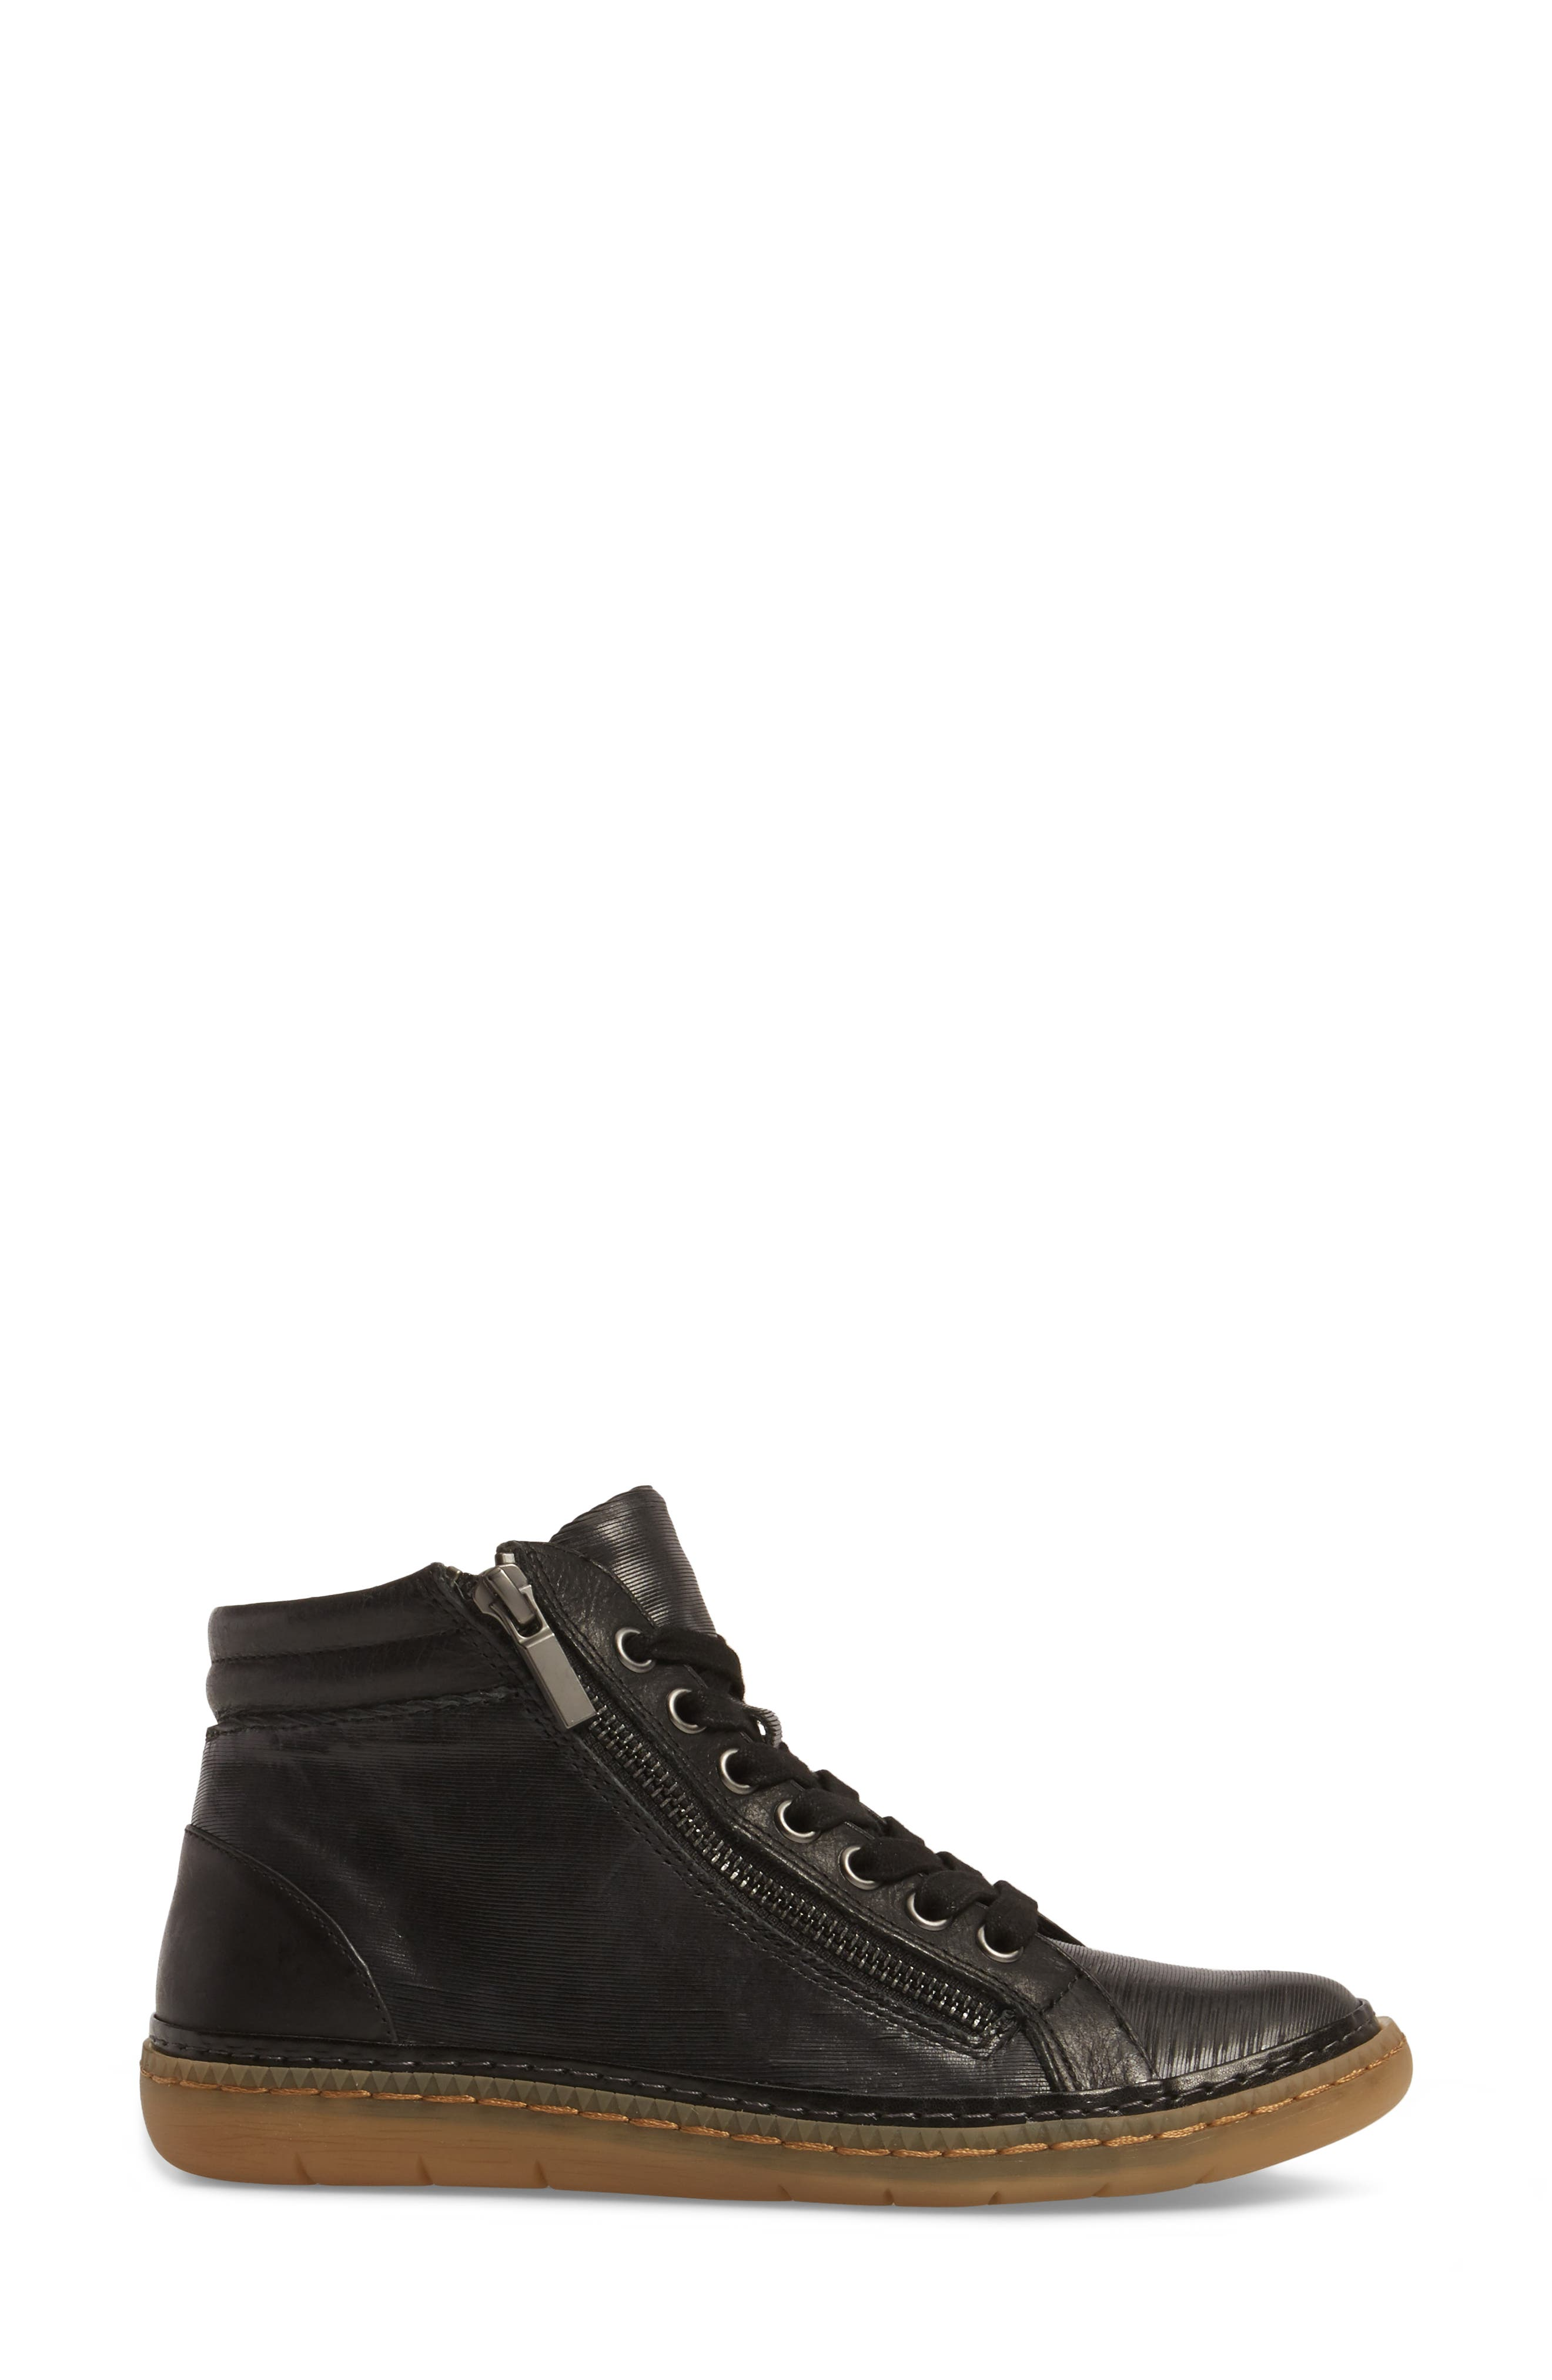 Annaleigh High Top Sneaker,                             Alternate thumbnail 3, color,                             BLACK LEATHER